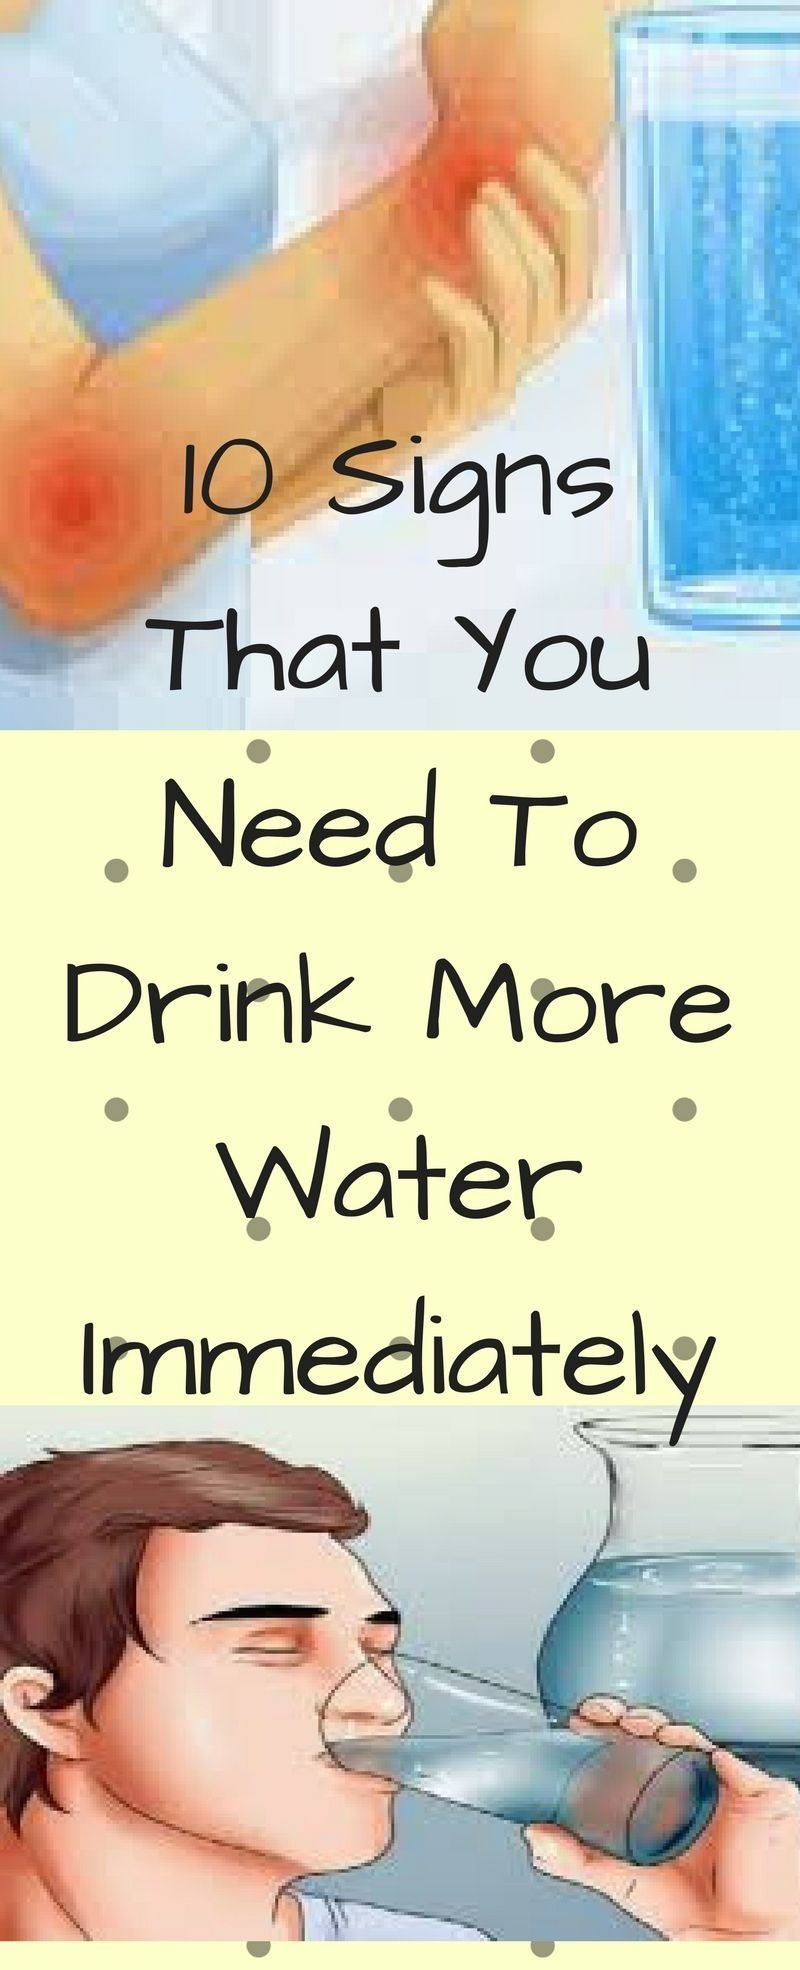 signs that you need to drink more water immediately  good health   signs that you need to drink more water immediately  good health essay